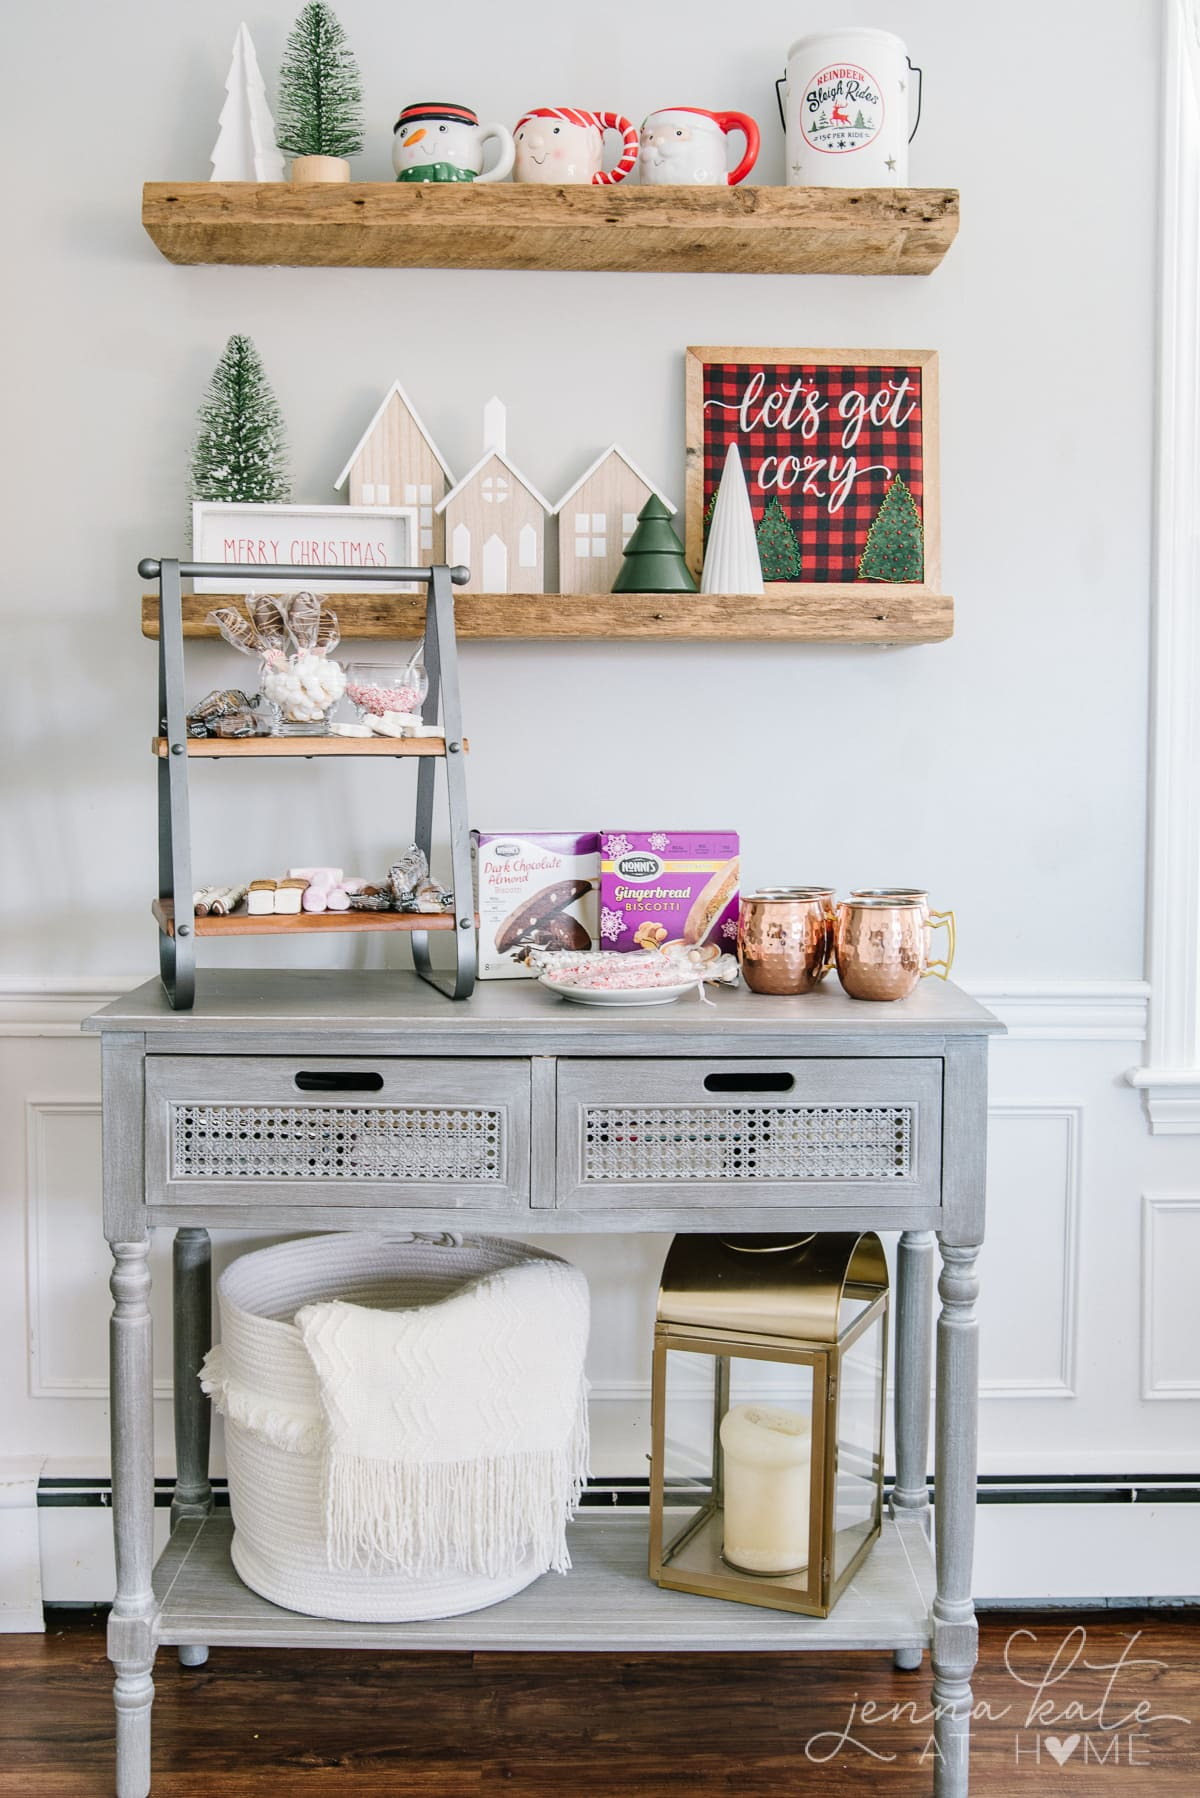 Hot cocoa bar set up for Christmas on a console table with shelves above it